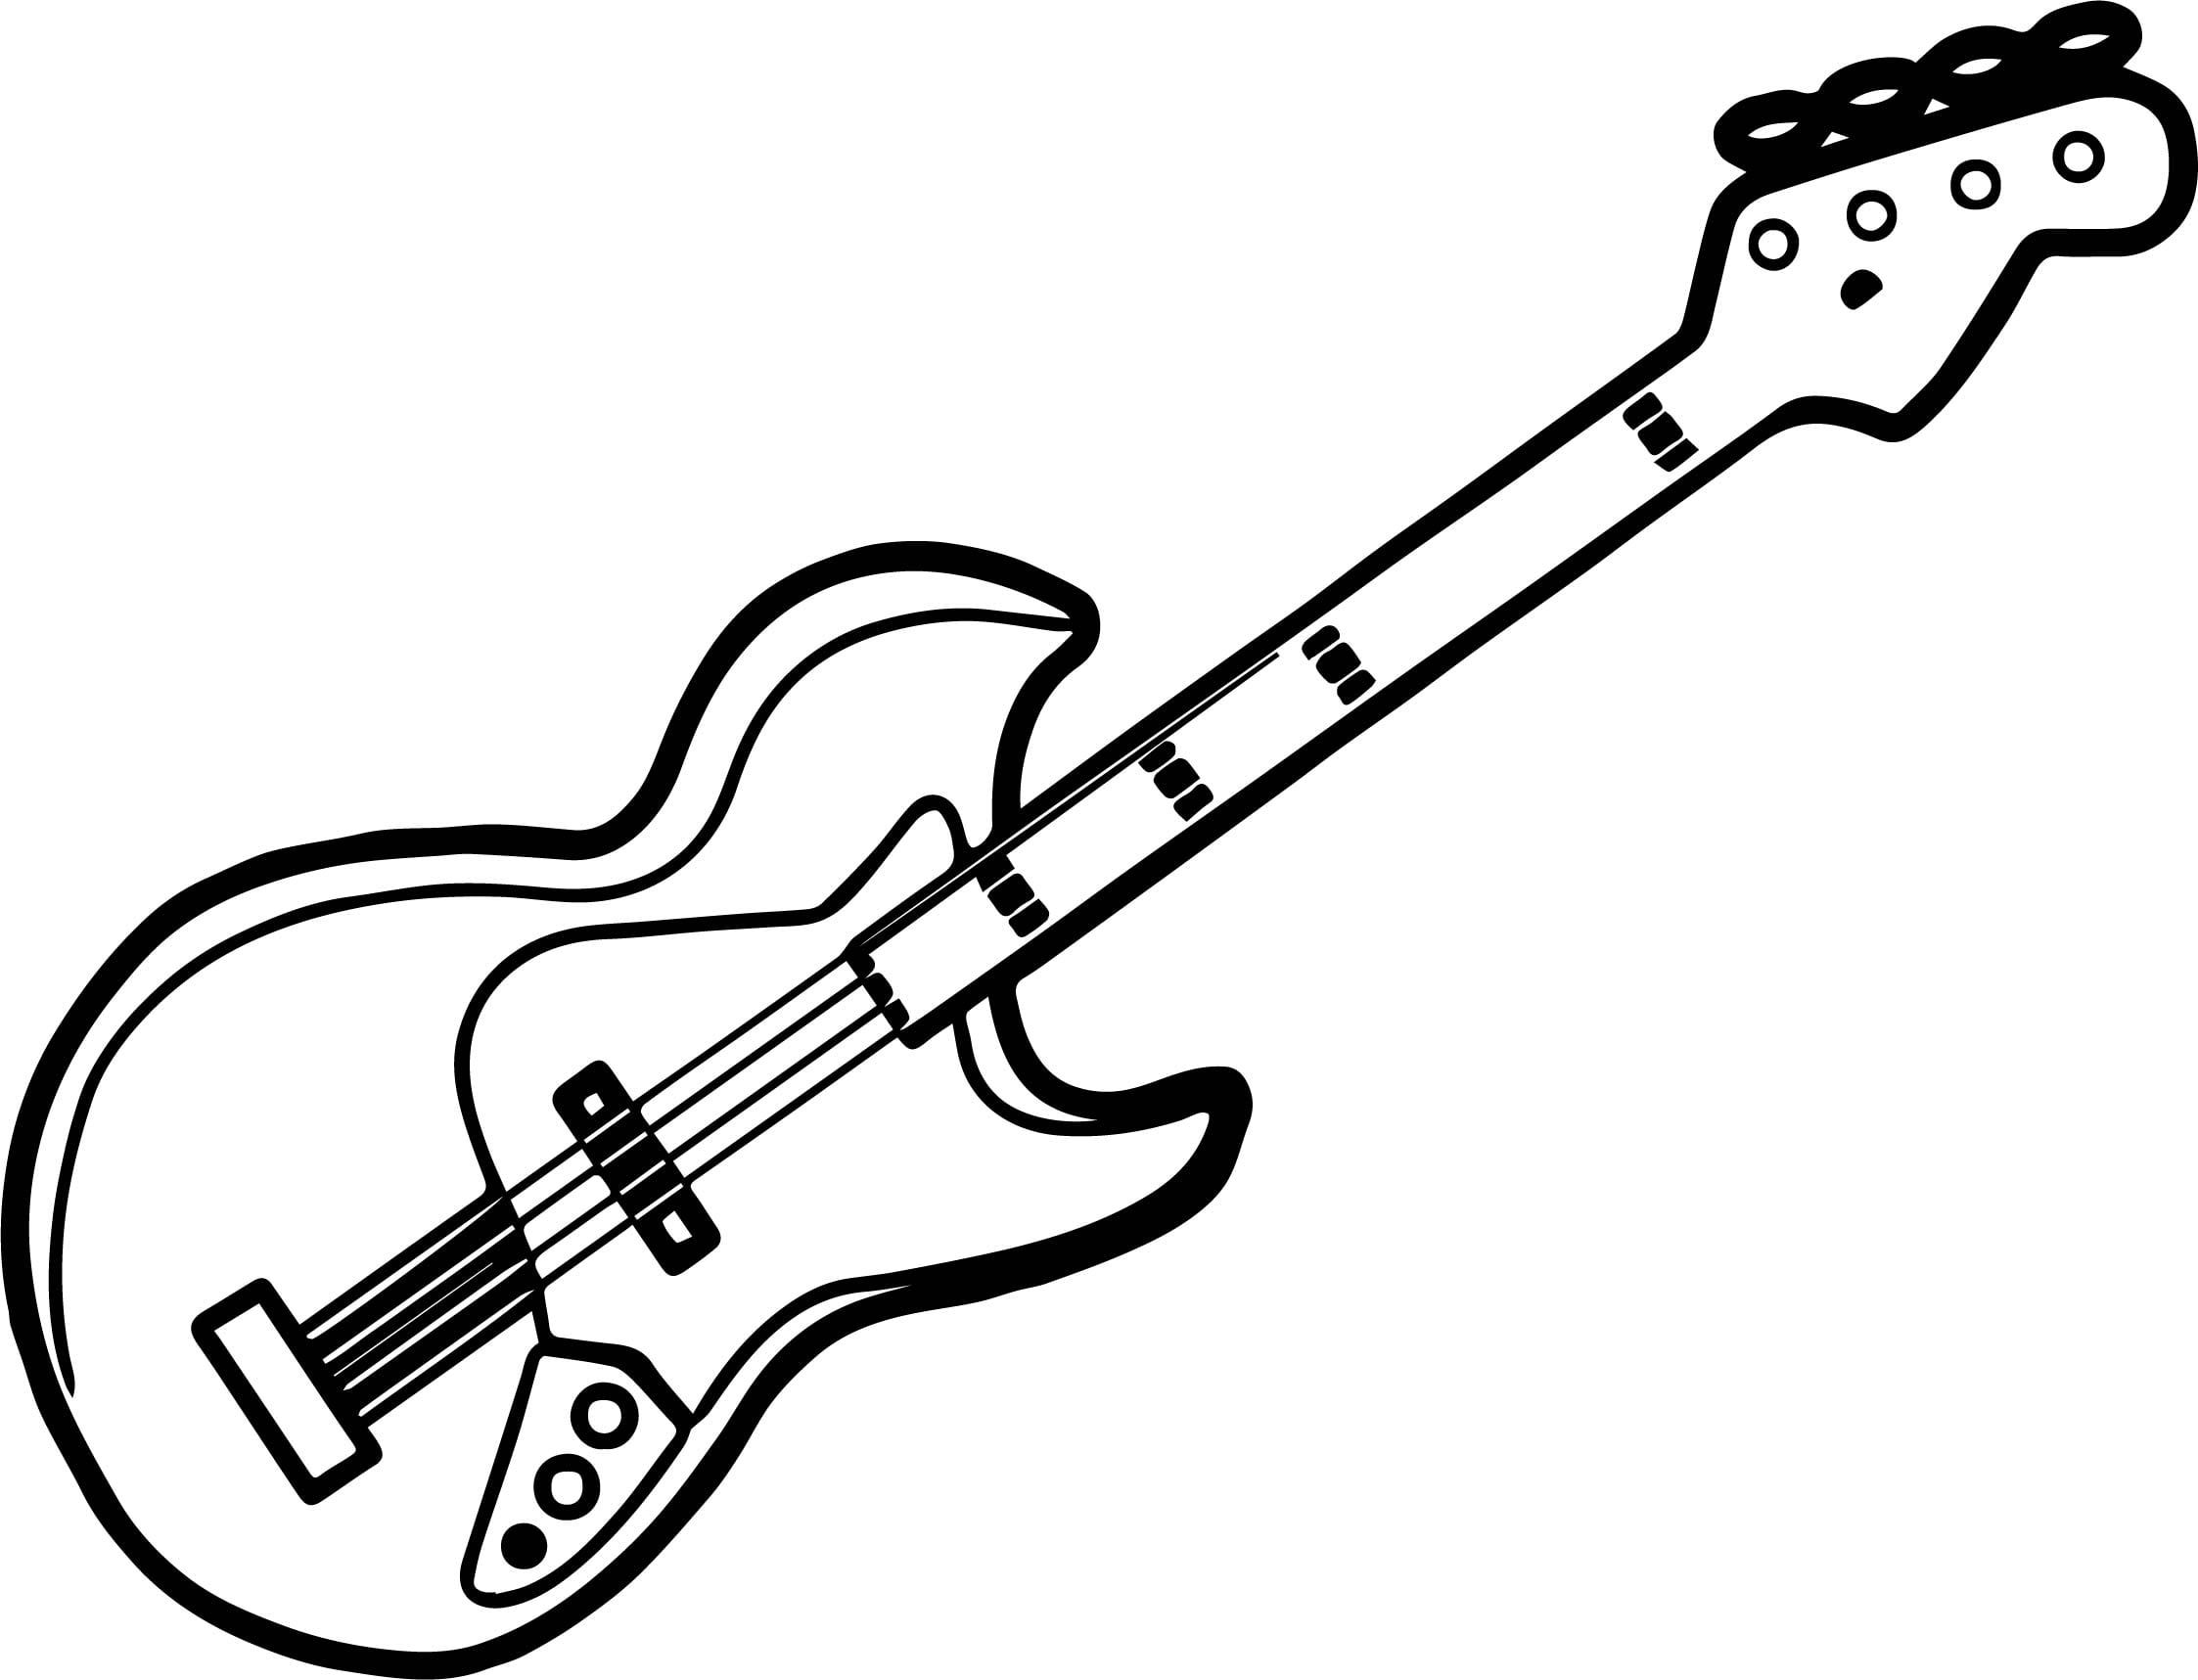 Guitar Coloring Pages Best Coloring Pages For Kids Guitar Drawing Electric Guitar Guitar